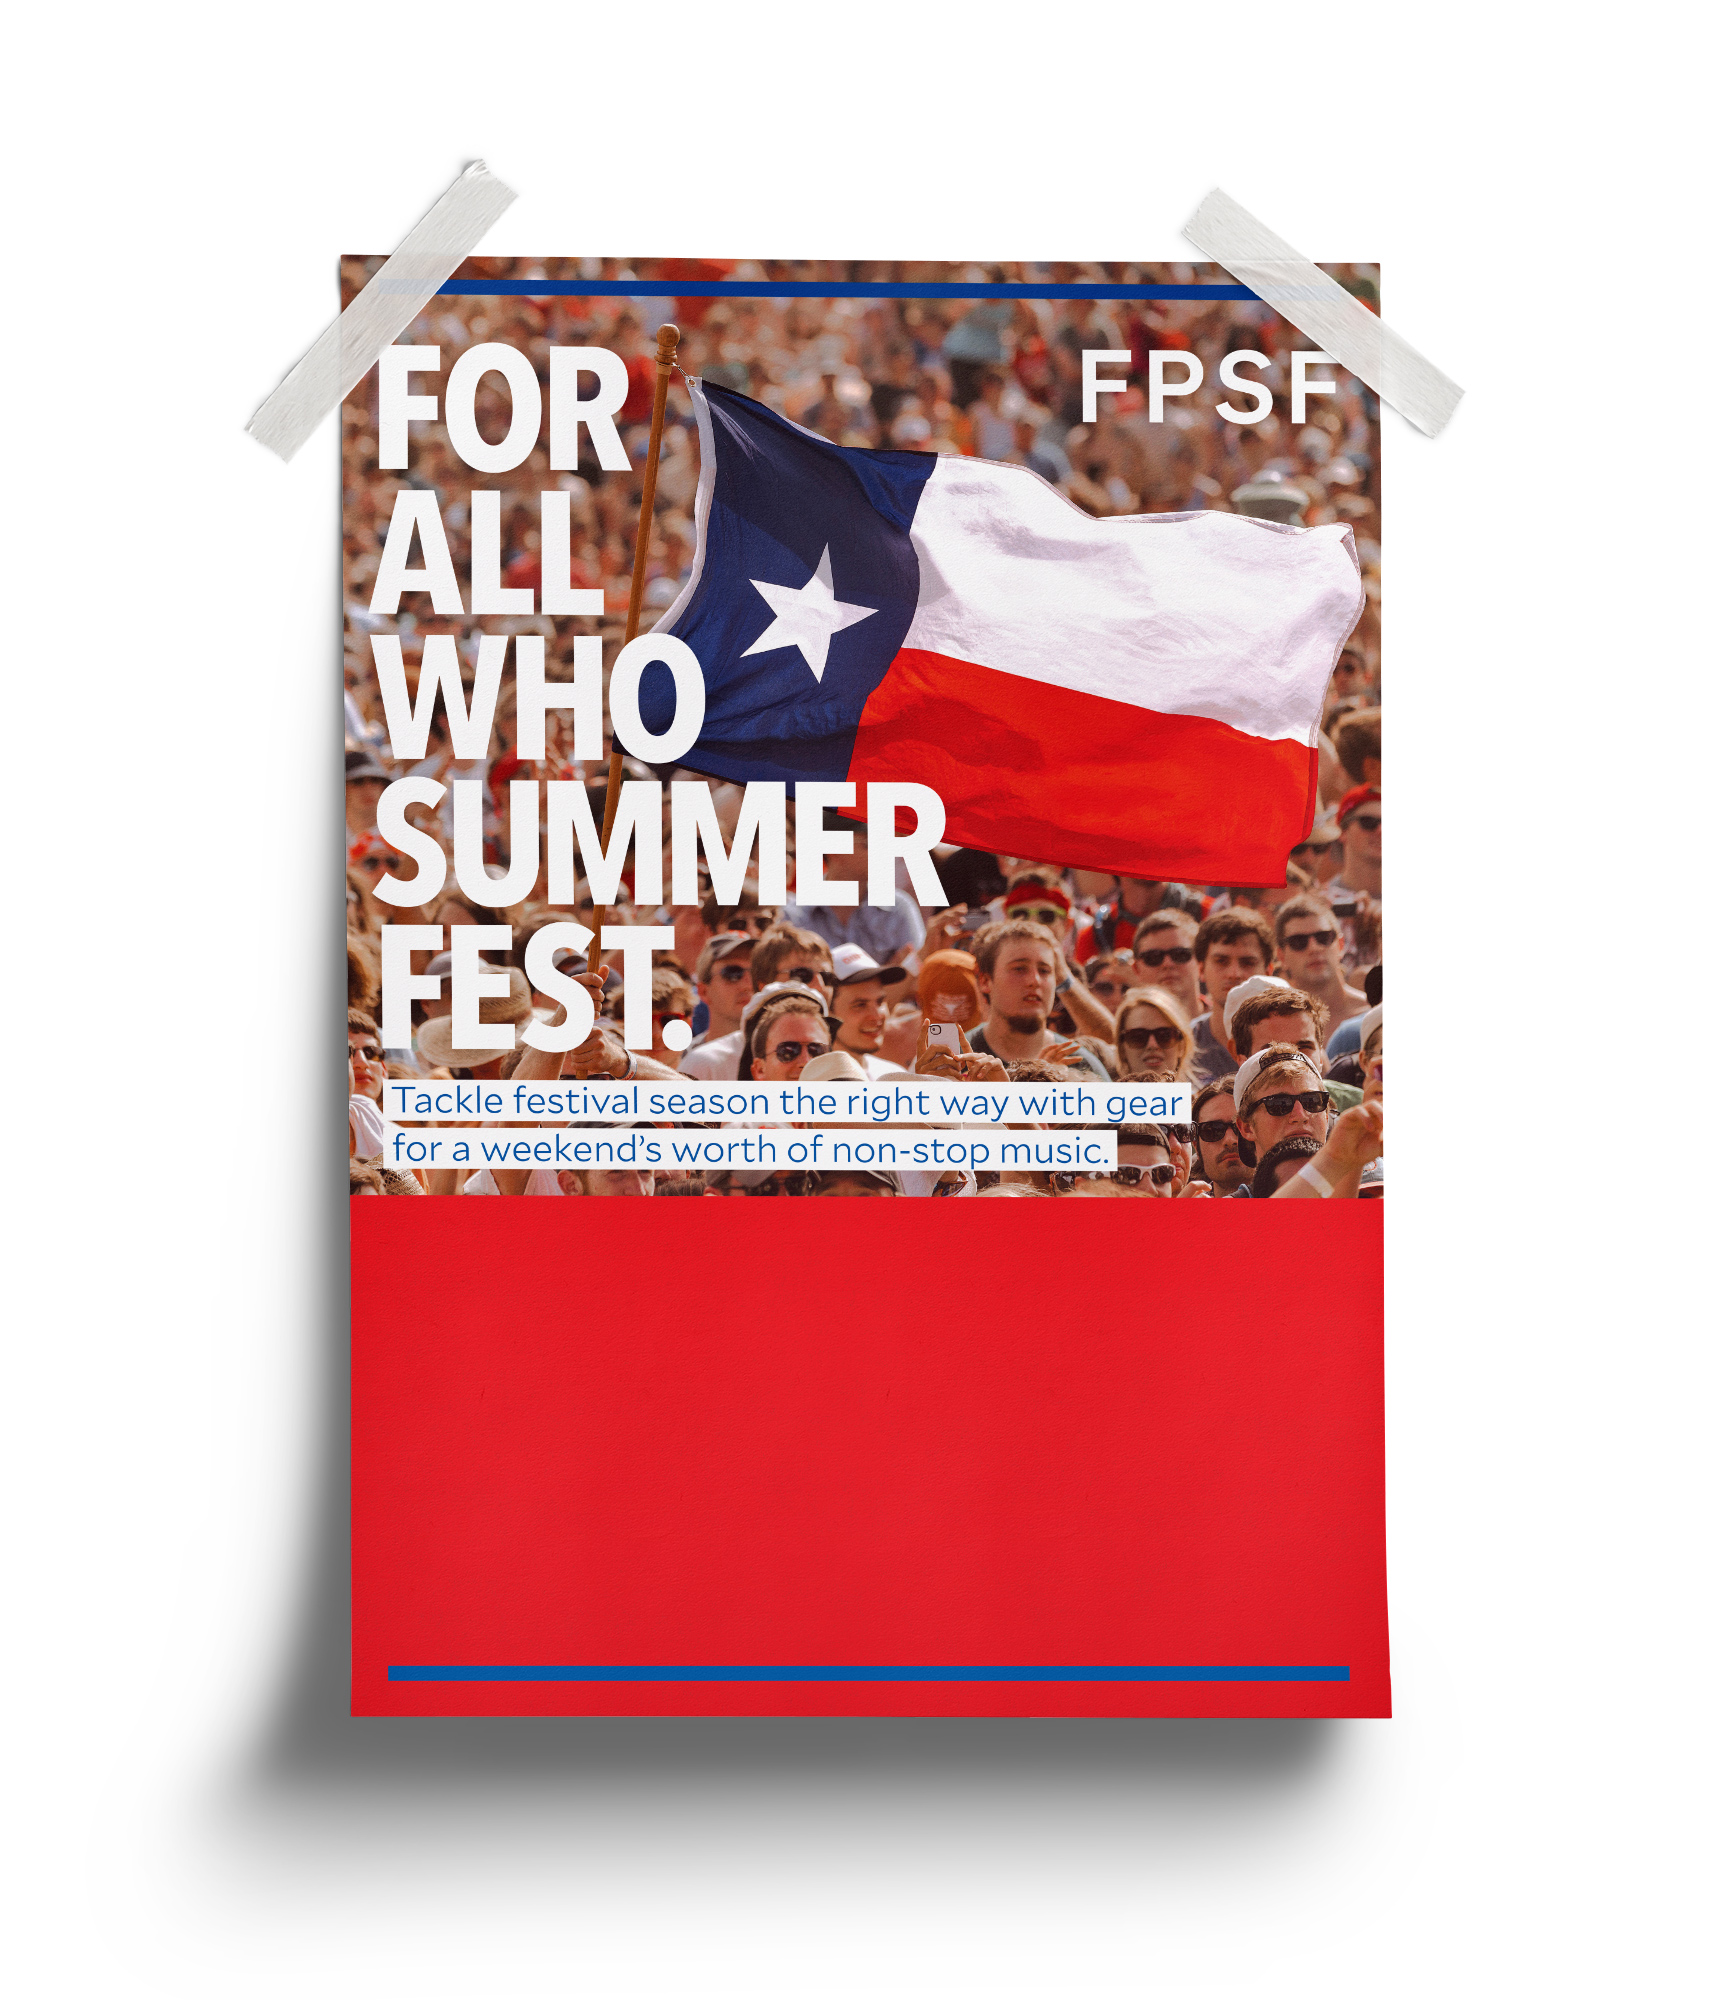 Texas flag being flown in a festival crowd photograph captured by Todd Spoth and in use by Academy Sports & Outdoors.